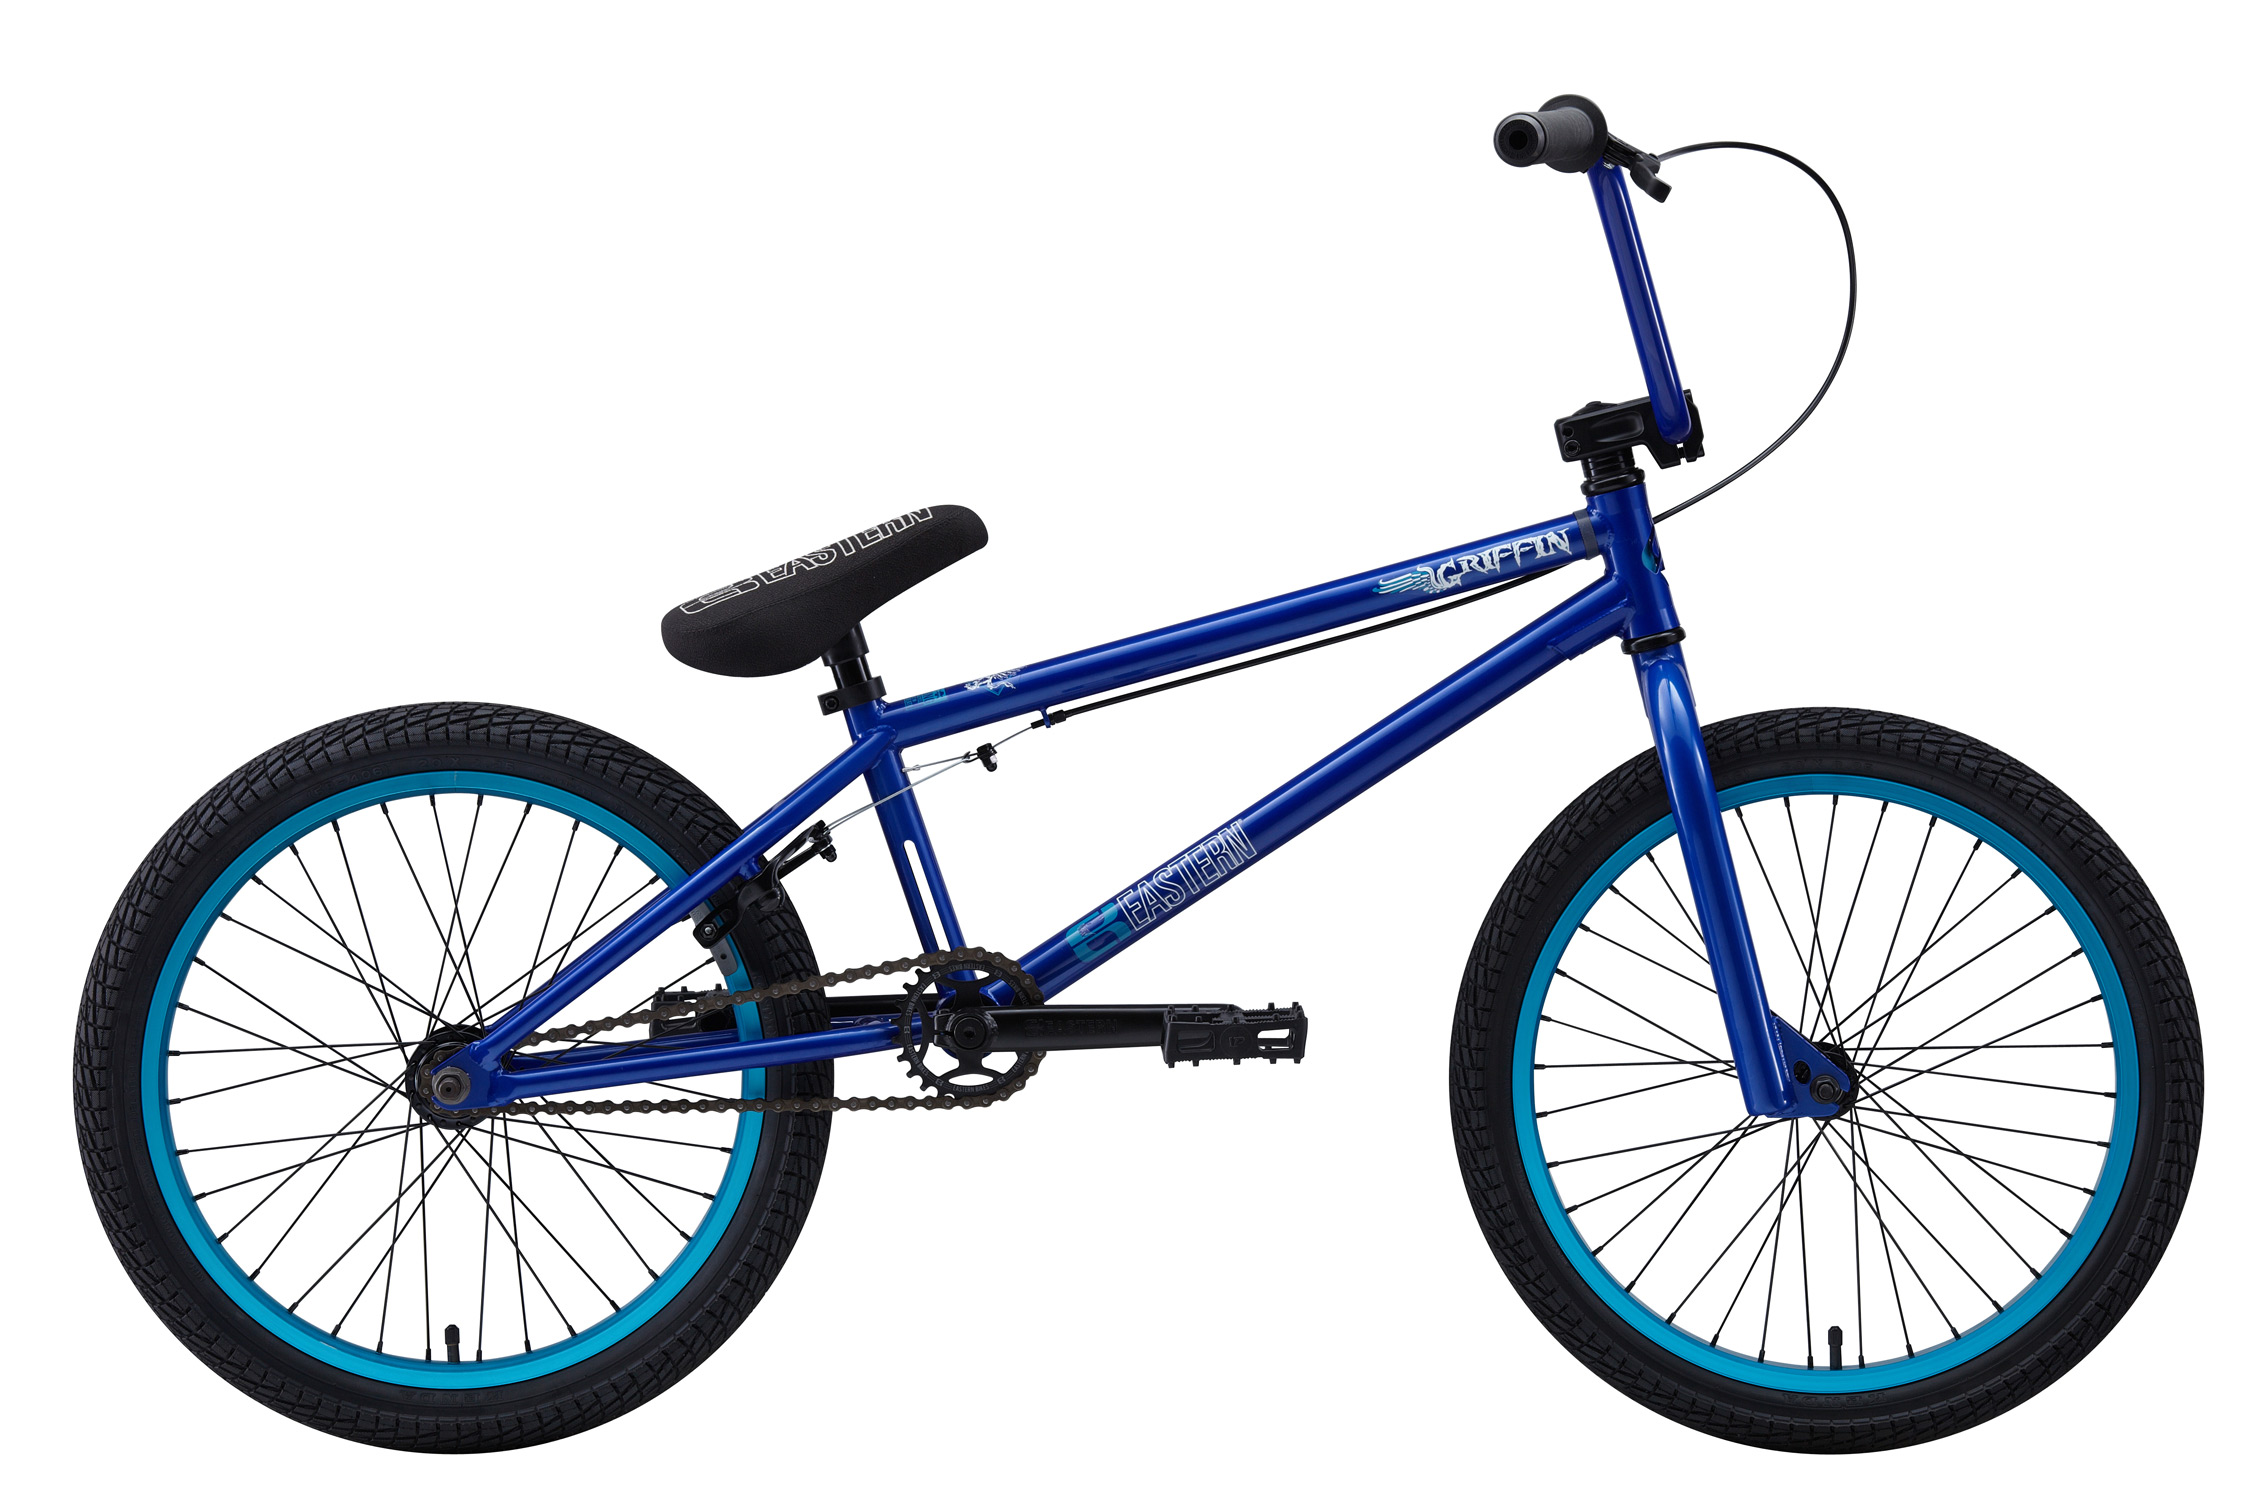 "BMX Key Features of the Eastern Griffin BMX Bike Matte: WEIGHT: 26.1 LBS TOP TUBE SIZE: 21"" COLORS : Matte Black/Green, Gloss Midnight Blue/Hot Blue GEARING: 25/9 Micro-drive FRAME: Griffin frame w/ ""E"" logo cut out in Headtube, classic Eastern Seat tube cutout. Hi-Tensile Strength 1020 Steel Frame. Eastern Promise: lifetime warranty, lifetime upgrade policy FORK: Griffin Hi-Tensile Strength 1020 Steel BARS: 8.25""x 28.5"" , 1"" Upsweep, 12"" Backsweep HEADSET: 1-1/8"" Aheadset BB: Sealed Bearing, Mid Bottom Bracket PEDALS: VP Components Plastic Platform Pedals GRIPS: Velo Mushroom Grip** STEM: Forged Alloy Front Load SPROCKET: Eastern Phorcys 25T steel CRANKS: Tubular chromoly heat-treated 3pc. cranks with 8 spline spindle SEAT: Eastern logo 1pc. seat and alloy post combo, Durable Nylon Cover, and Stitched Logo SEATPOST: Alloy post included with seat SEAT CLAMP: Nitrous Locker Forged Alloy Clamp TIRES: Multi-Surface, 20"" x 2.35"" ** FRONT HUB: Sealed Bearing, 36 hole Alloy Shell, 3/8"" Chromoly axle REAR HUB: Fully Sealed 36 hole cassette hub, Forged Alloy Shell, 1pc. 9-tooth chromoly driver, 14mm chromoly axle, 5 sealed bearings. RIMS: REAR-Double Wall Alloy, 36 Hole FRONT- Alloy 36 hole REAR BRAKES: Tektro Forged Alloy U-Brake /Straight Cable / Forged Alloy lever, Designed for U-Brakes FREEWHEEL: Sealed bearing 9-tooth 1pc. driver CHAIN: KMC PEGS: 2 pegs - $339.95"